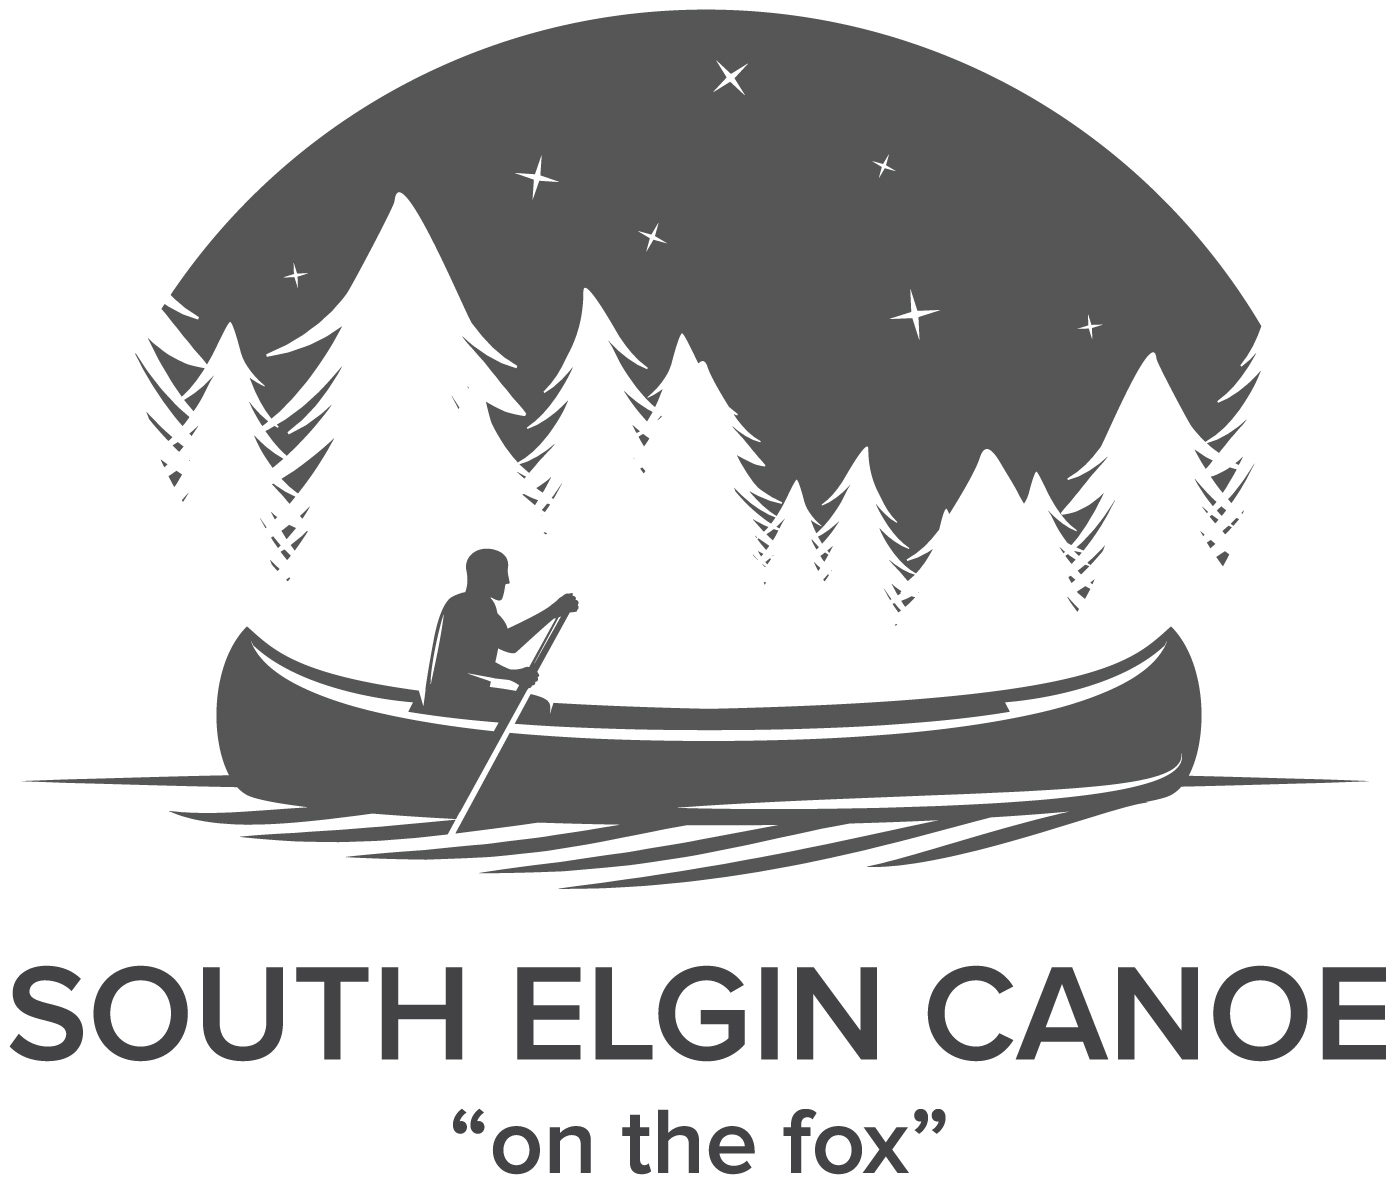 South Elgin Canoe